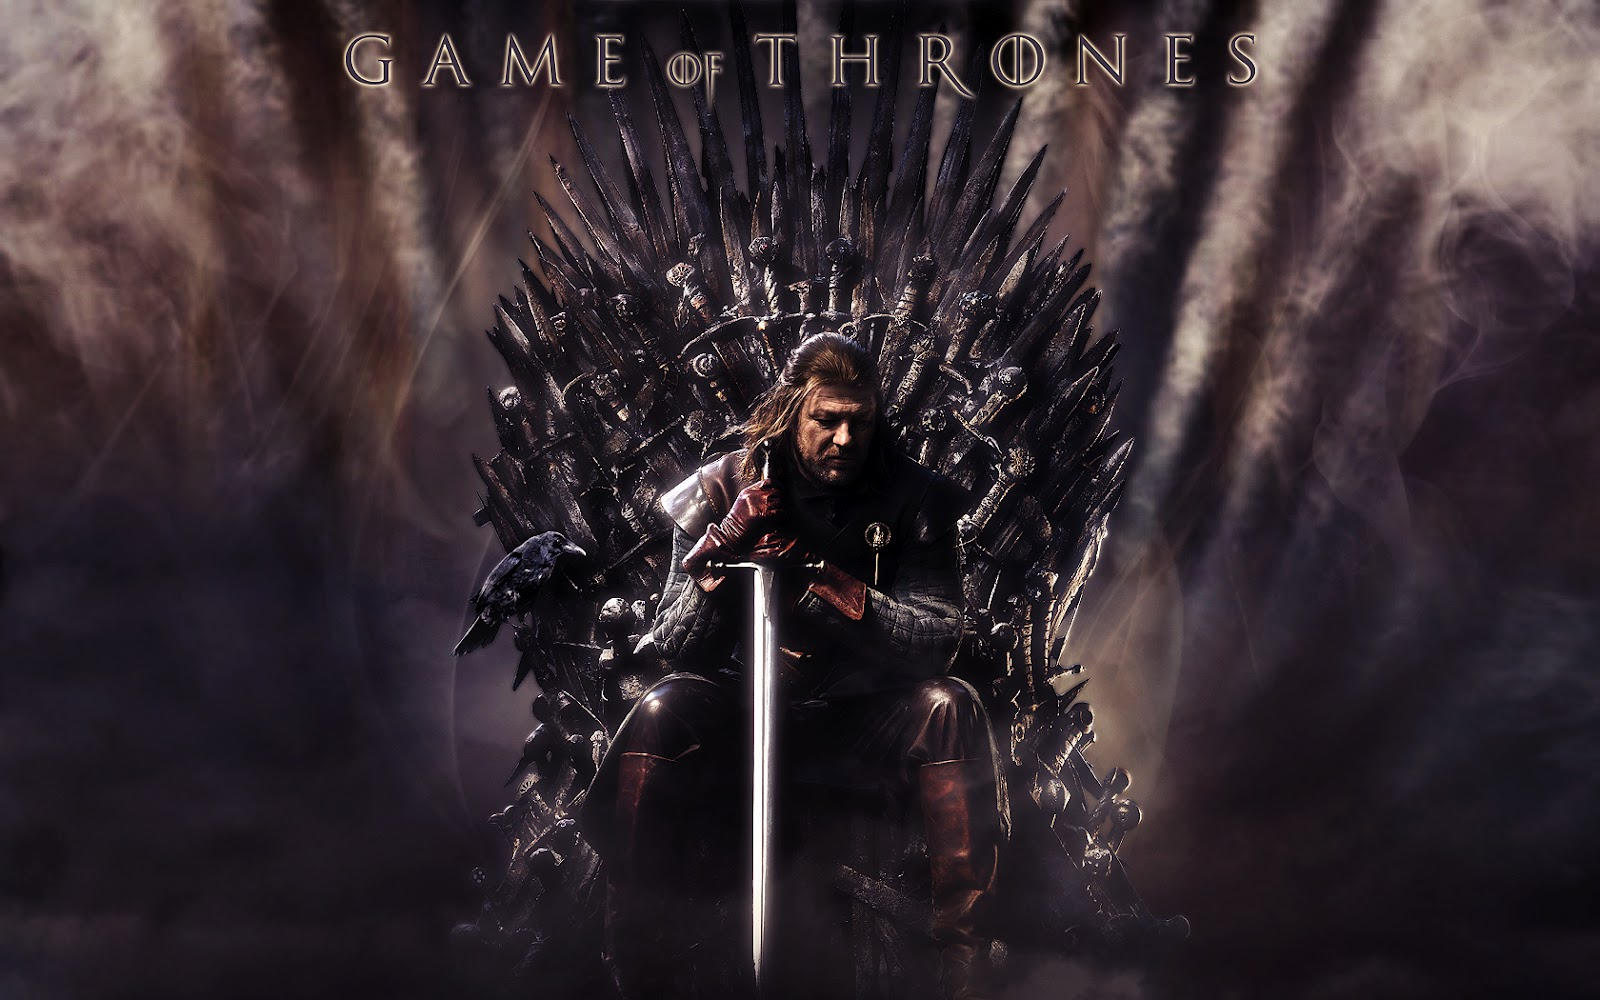 http://4.bp.blogspot.com/-jEWtX1jKFPQ/T100ODfpmXI/AAAAAAAAAN4/yrxZ-8eZZfg/s1600/game_of_thrones_wallpaper_by_en_taiho-d3bjxo7.jpg